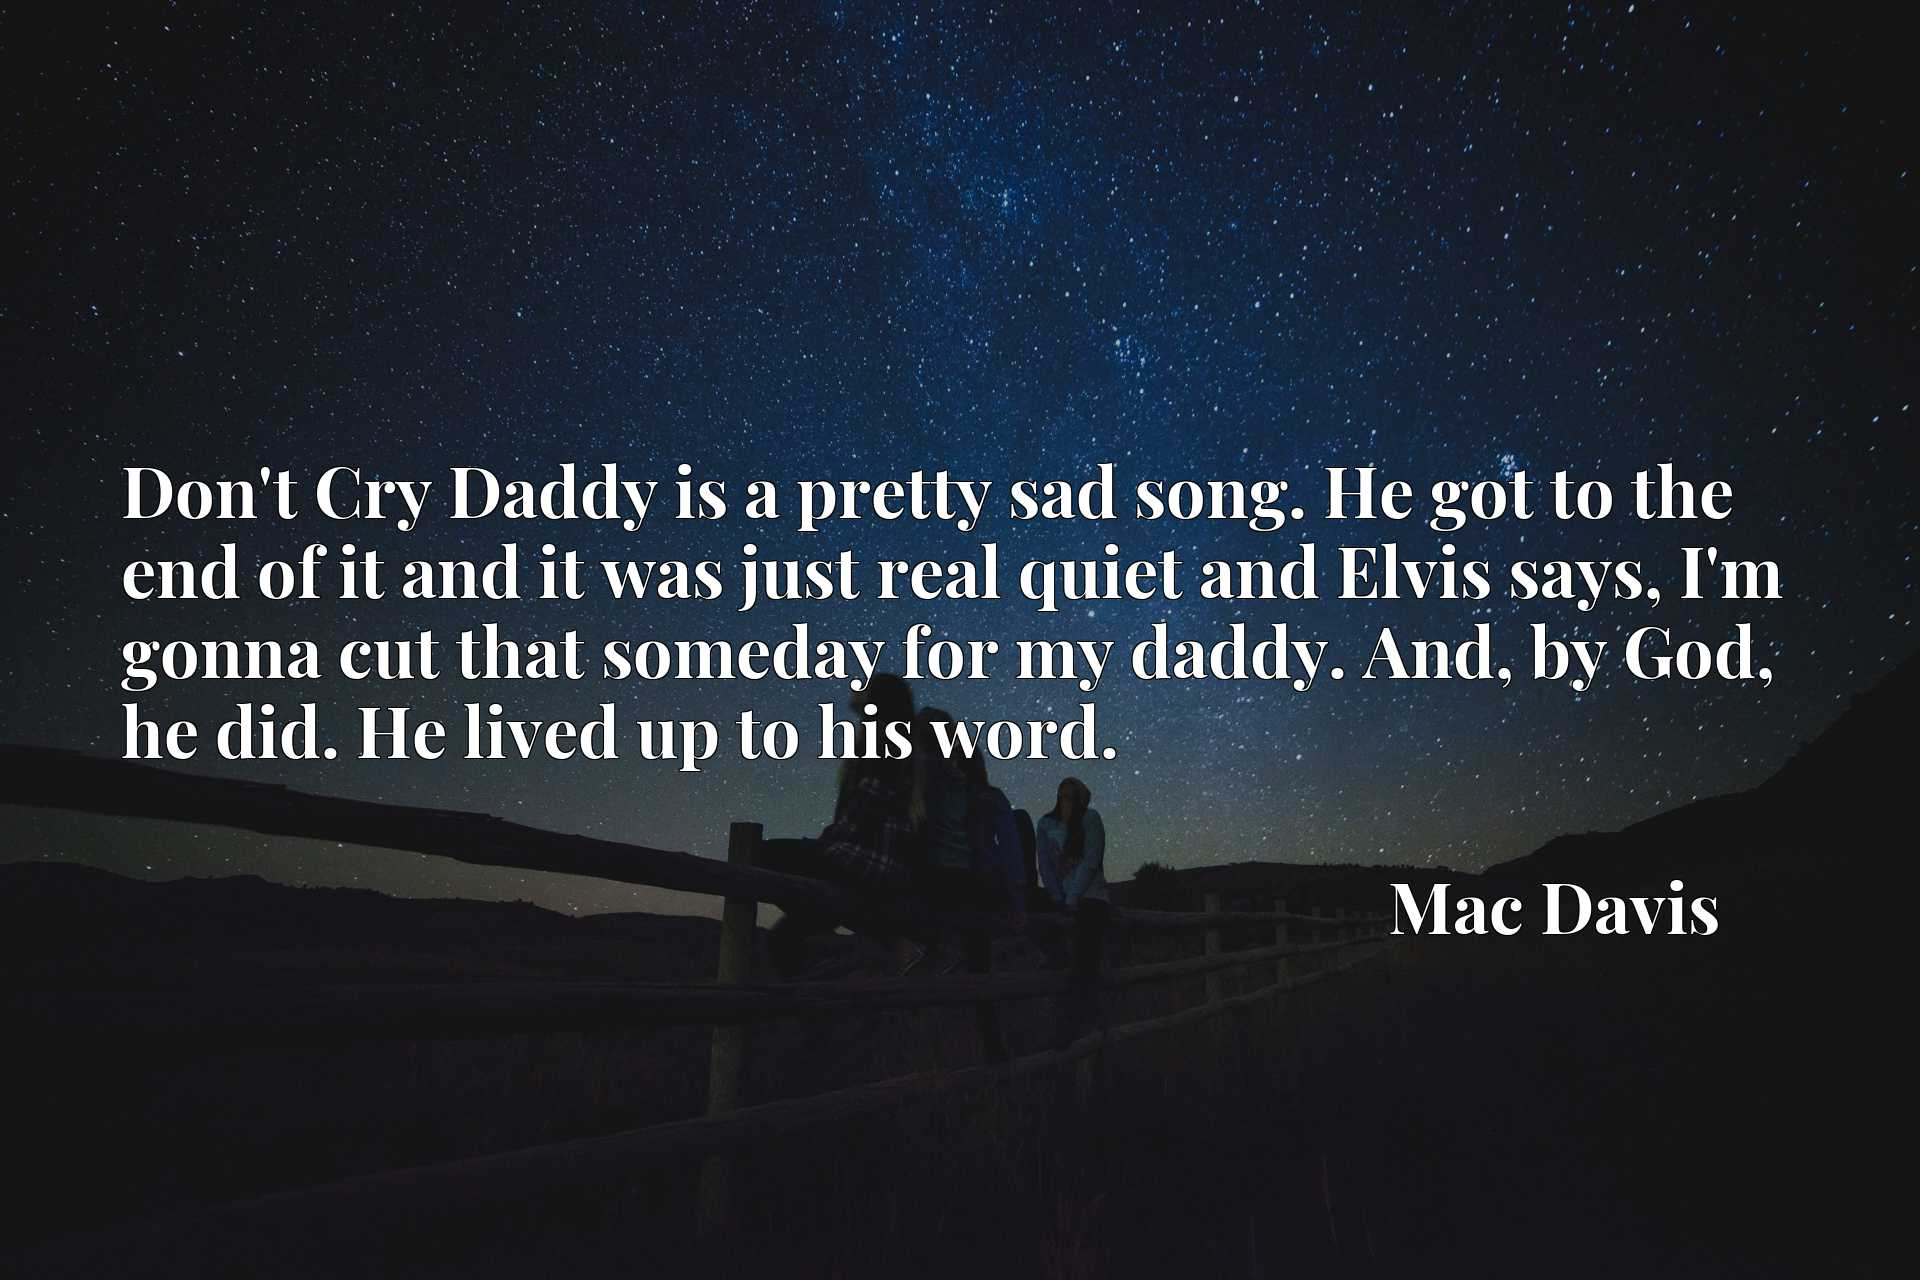 Don't Cry Daddy is a pretty sad song. He got to the end of it and it was just real quiet and Elvis says, I'm gonna cut that someday for my daddy. And, by God, he did. He lived up to his word.